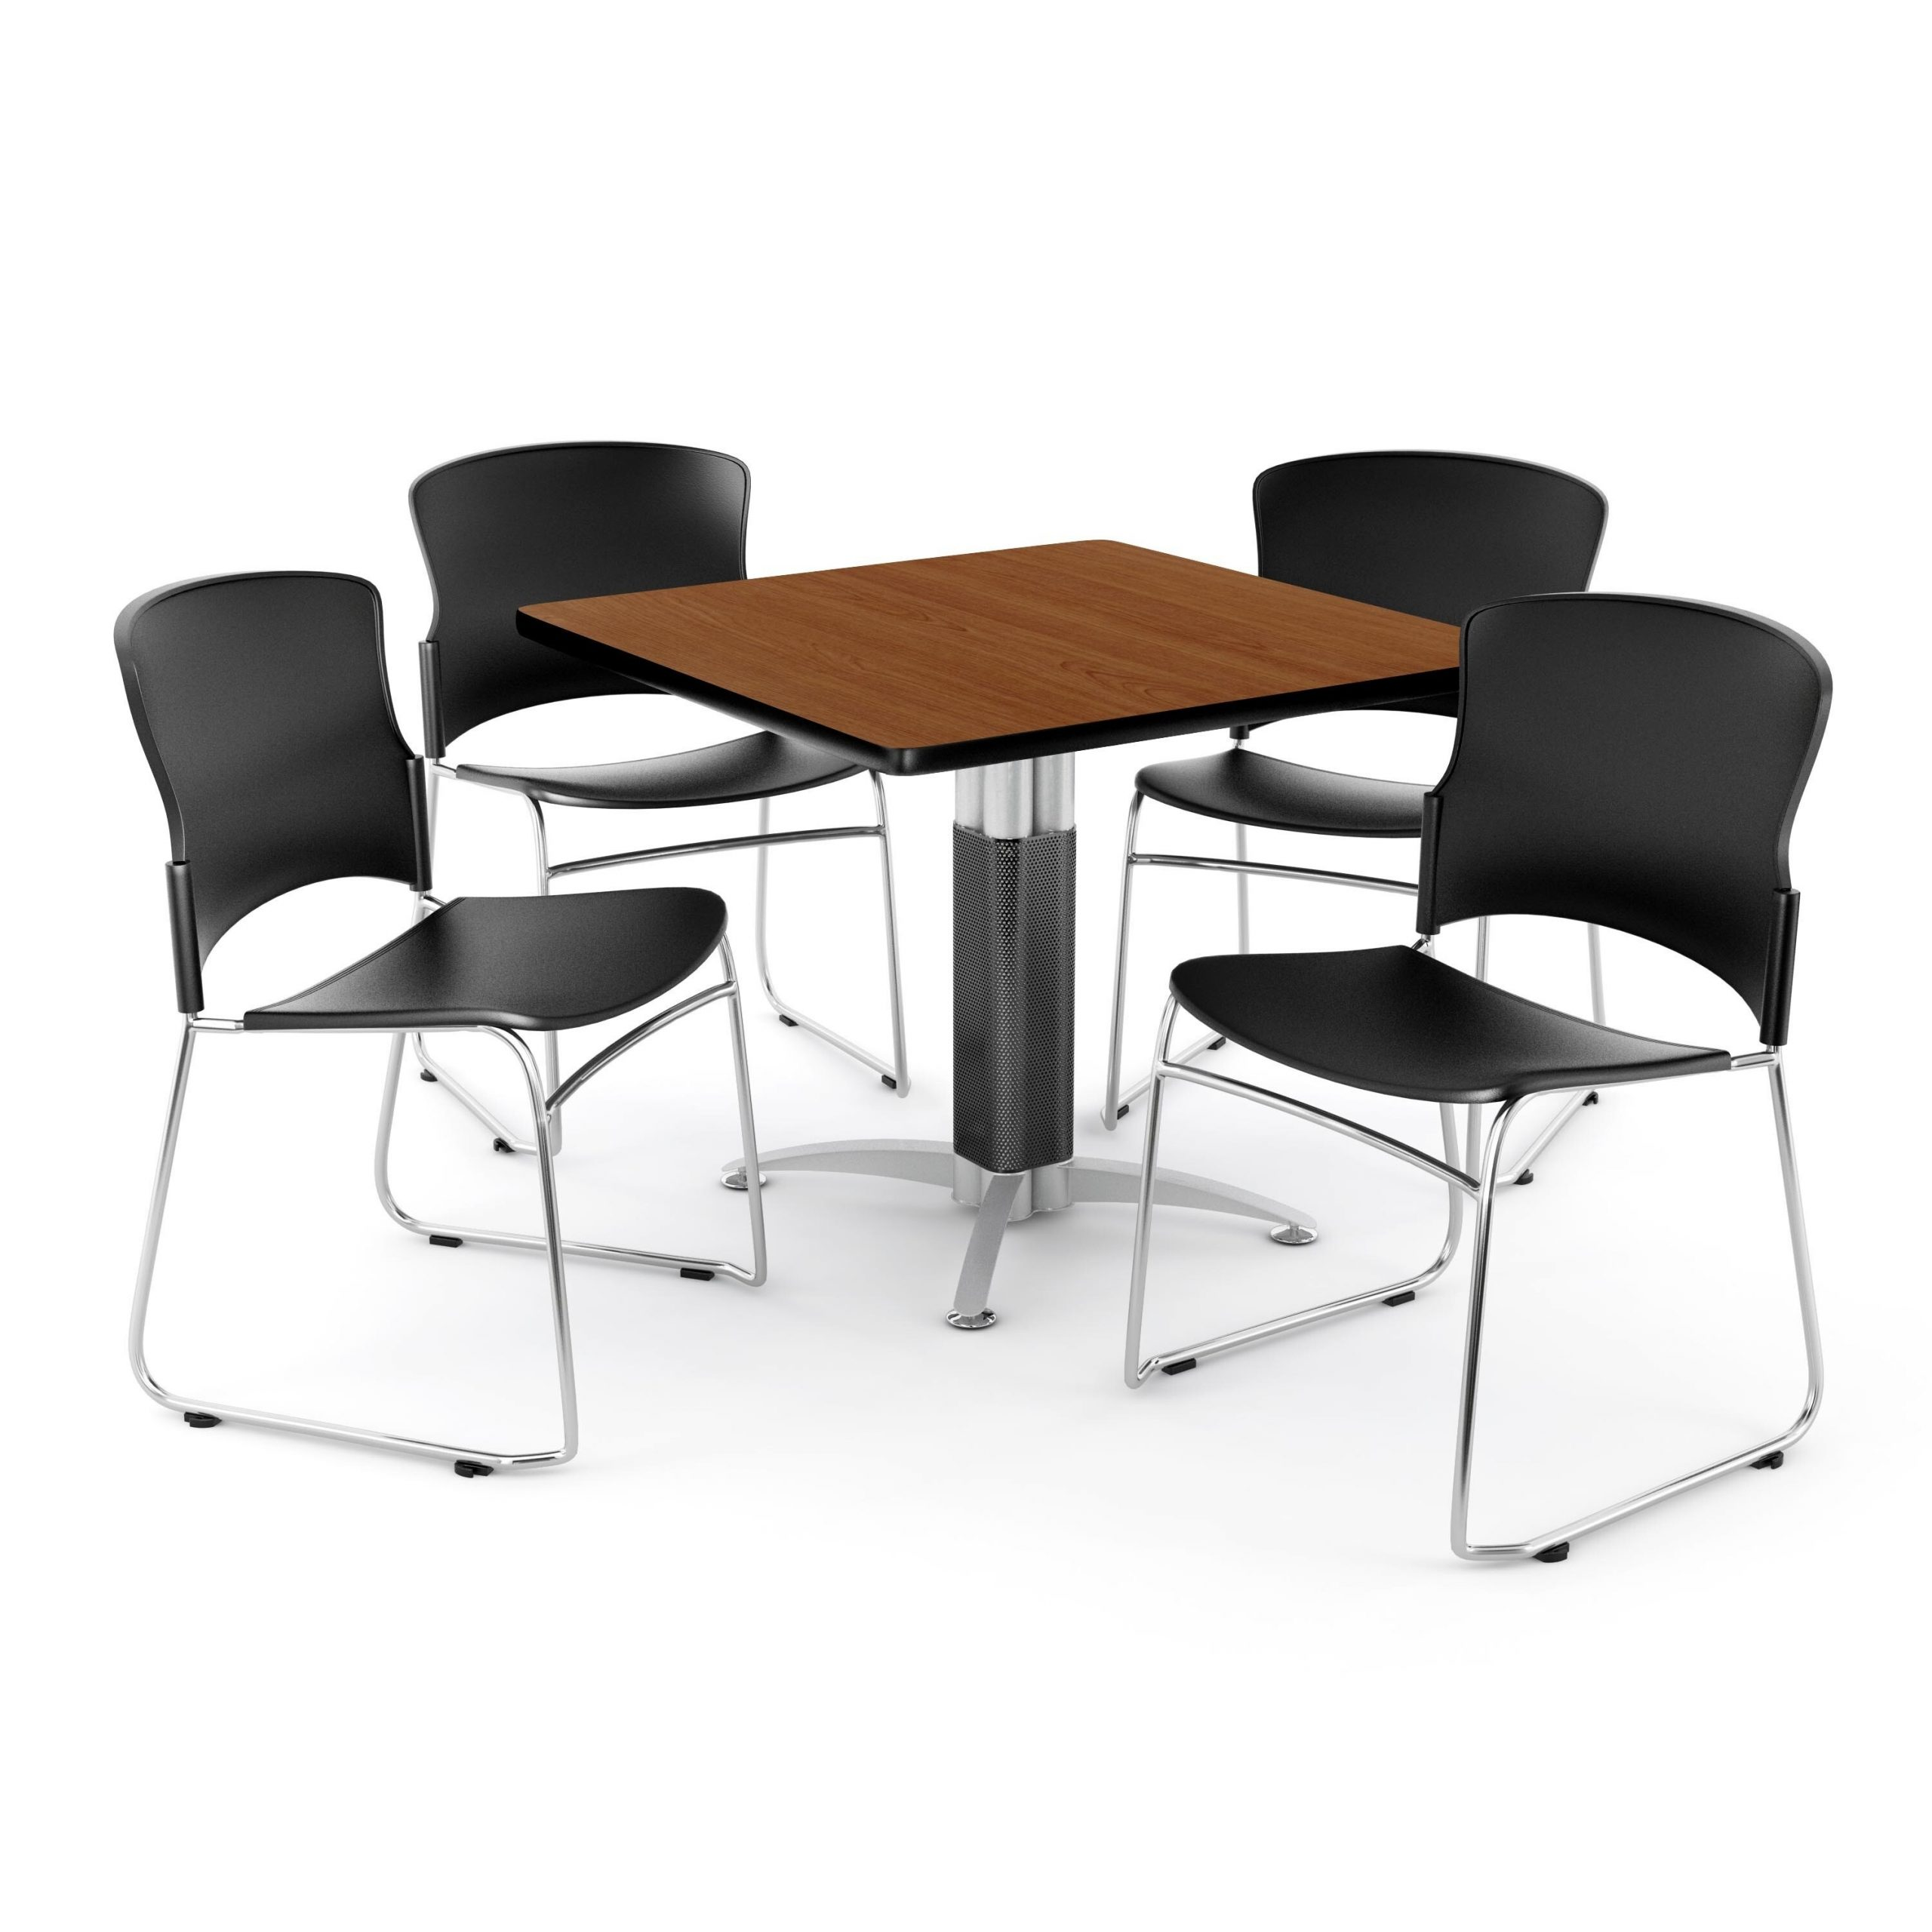 """Ofm Cherry 36 Inch Square Mesh Base Table With 4 Plastic Intended For Most Up To Date Bentham 47"""" L Round Stone Breakroom Tables (View 8 of 15)"""